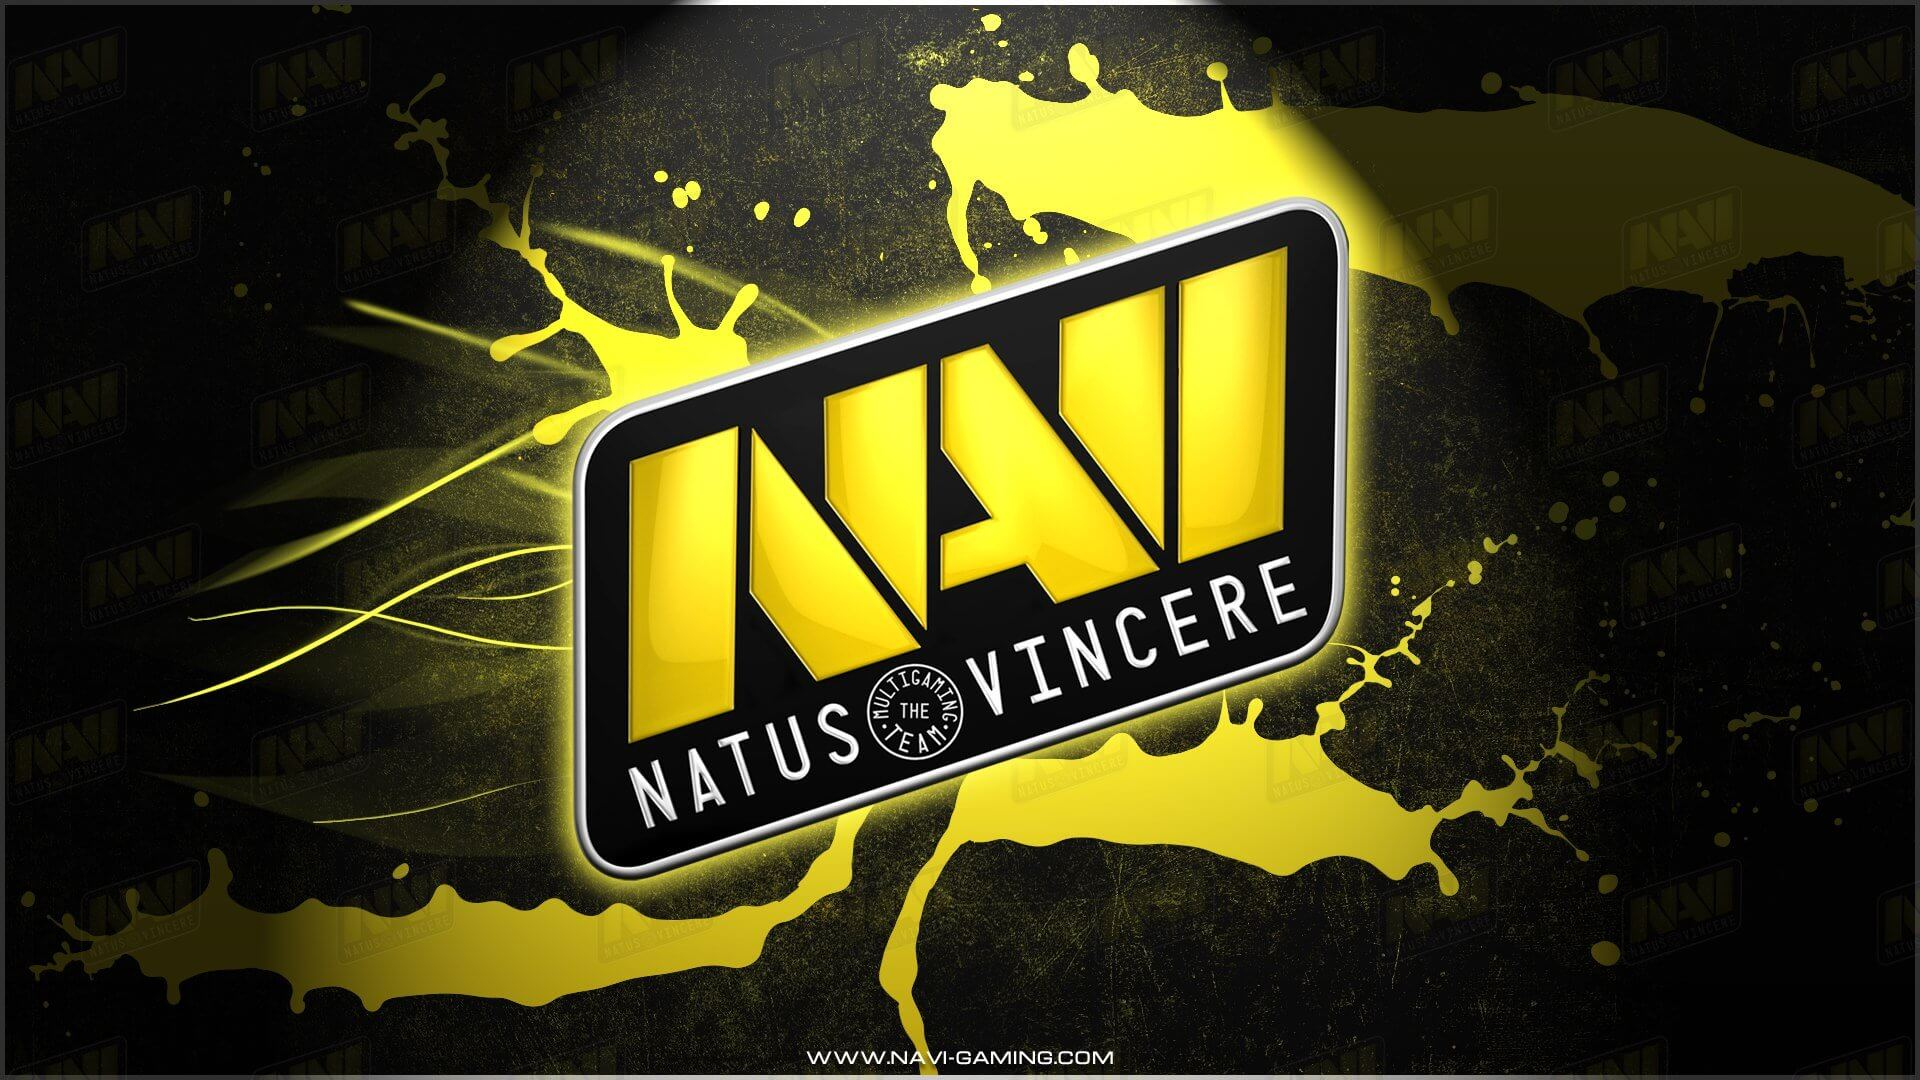 Navi is to be in The International 2019